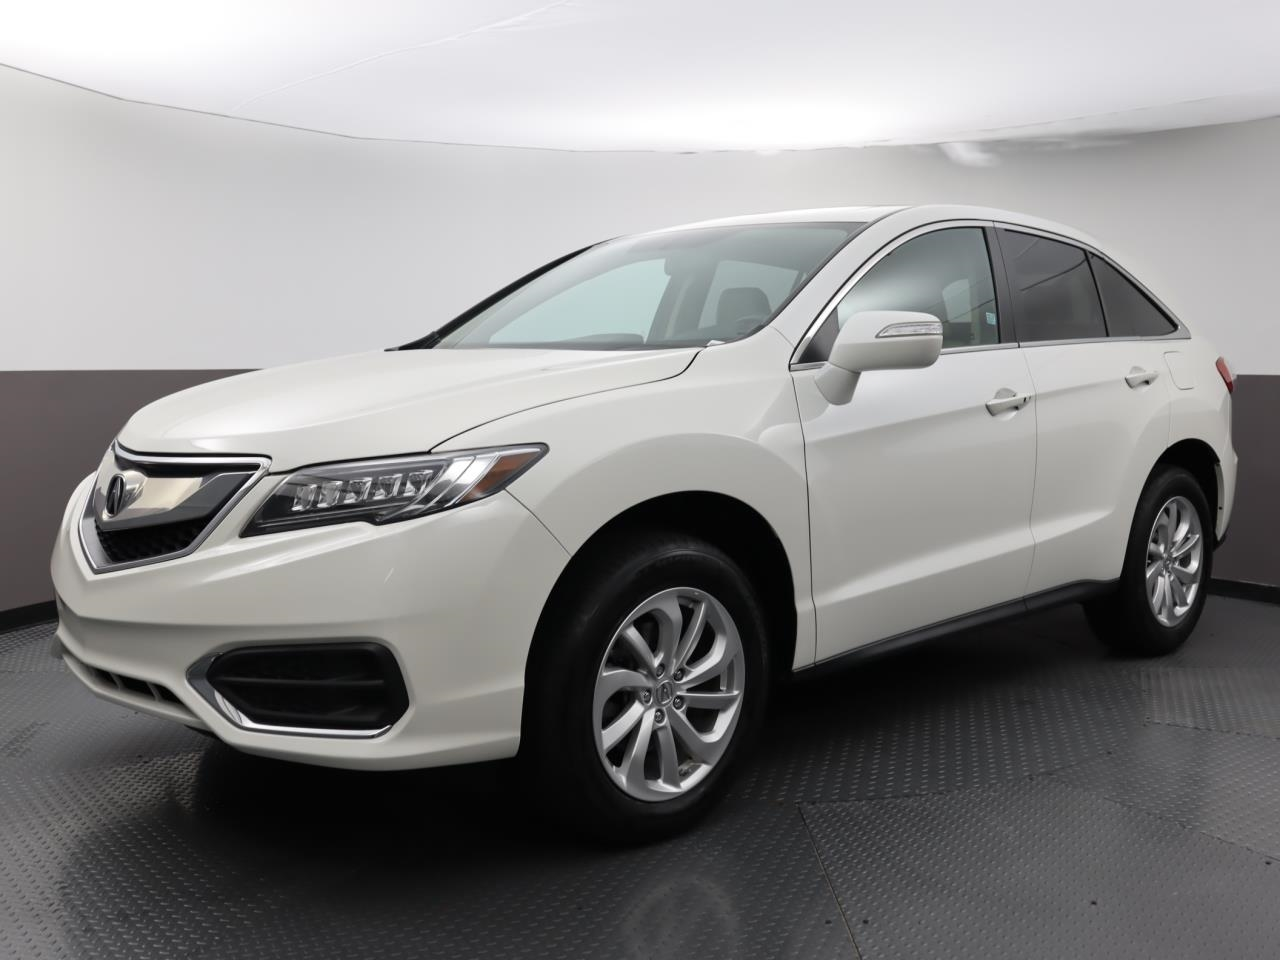 Used ACURA RDX 2018 WEST PALM W/ACURAWATCH PLUS